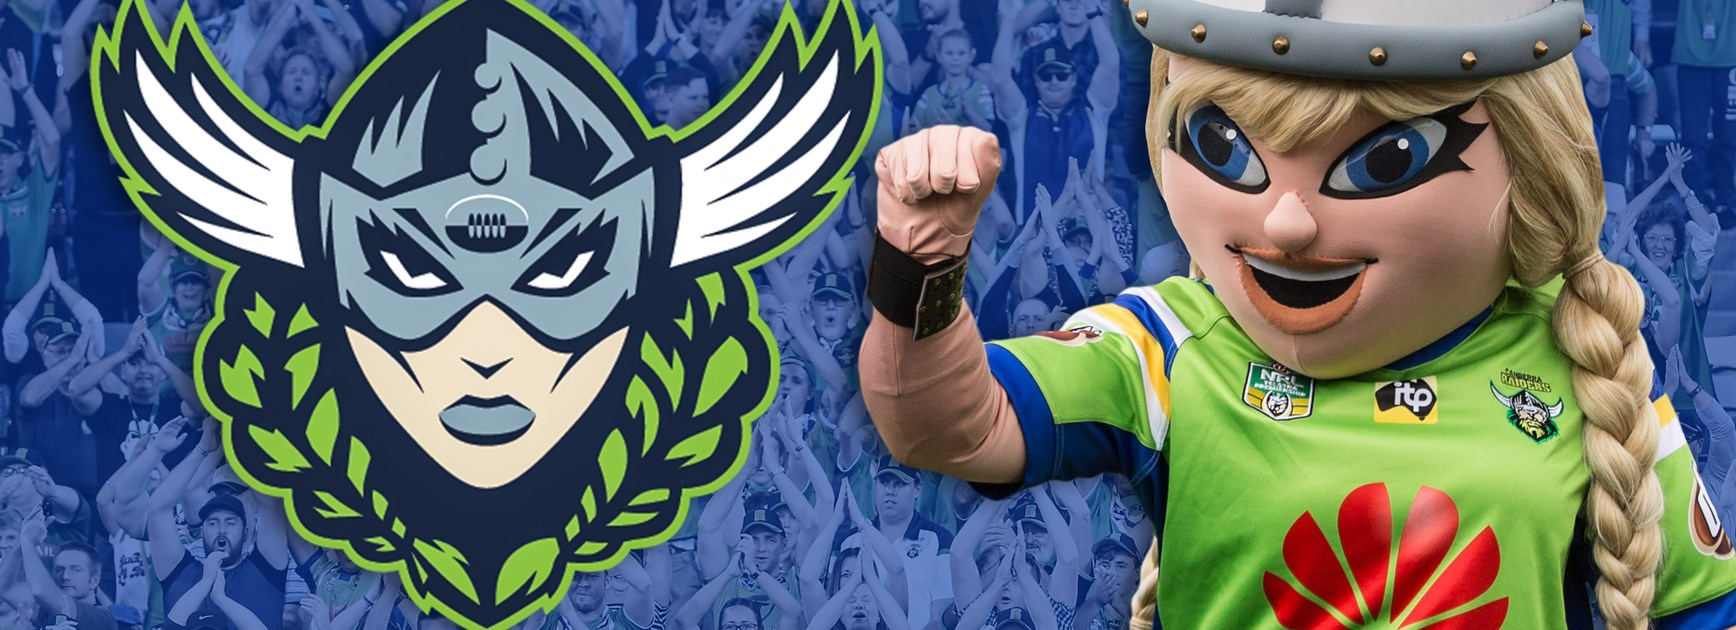 Raiders a rising force in women's NRL ranks